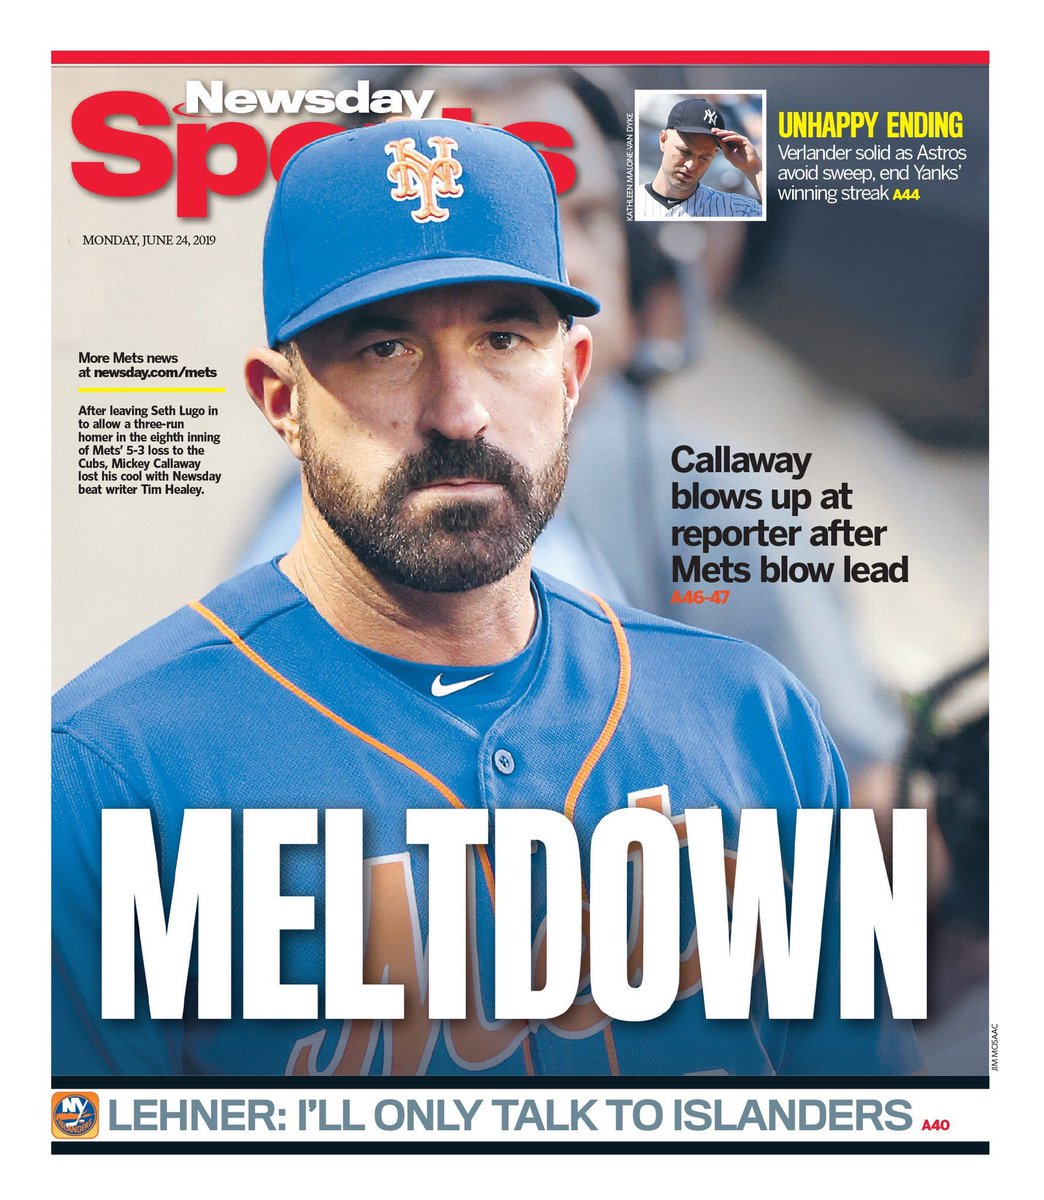 test Twitter Media - Mets backpages for today..🙄 @NYDNSports @nypostsports @NewsdaySports https://t.co/kFMFiuG6bA